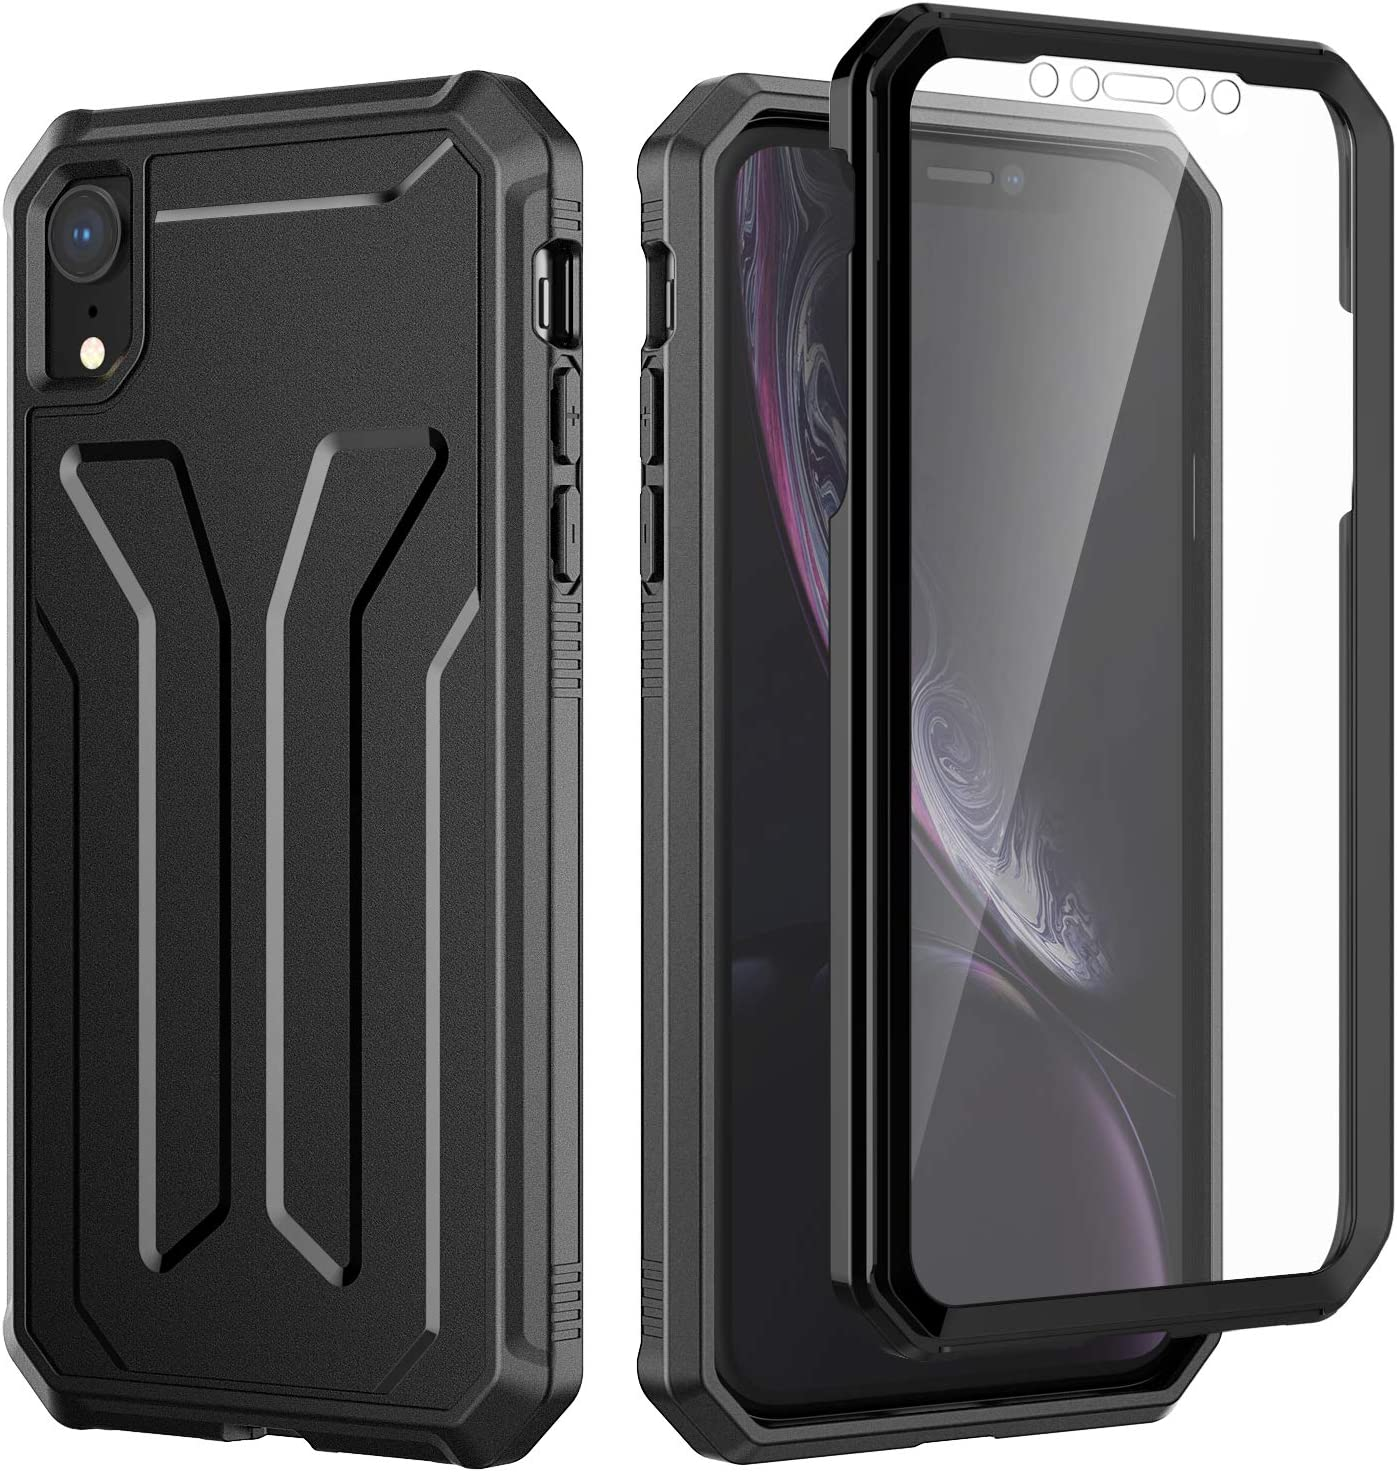 JETech Case for iPhone XR 6.1-Inch, 360 Degree Full Body Protection Cover with Built-in Sensitive Anti-Scratch Screen Protector, Shock-Absorption, Black